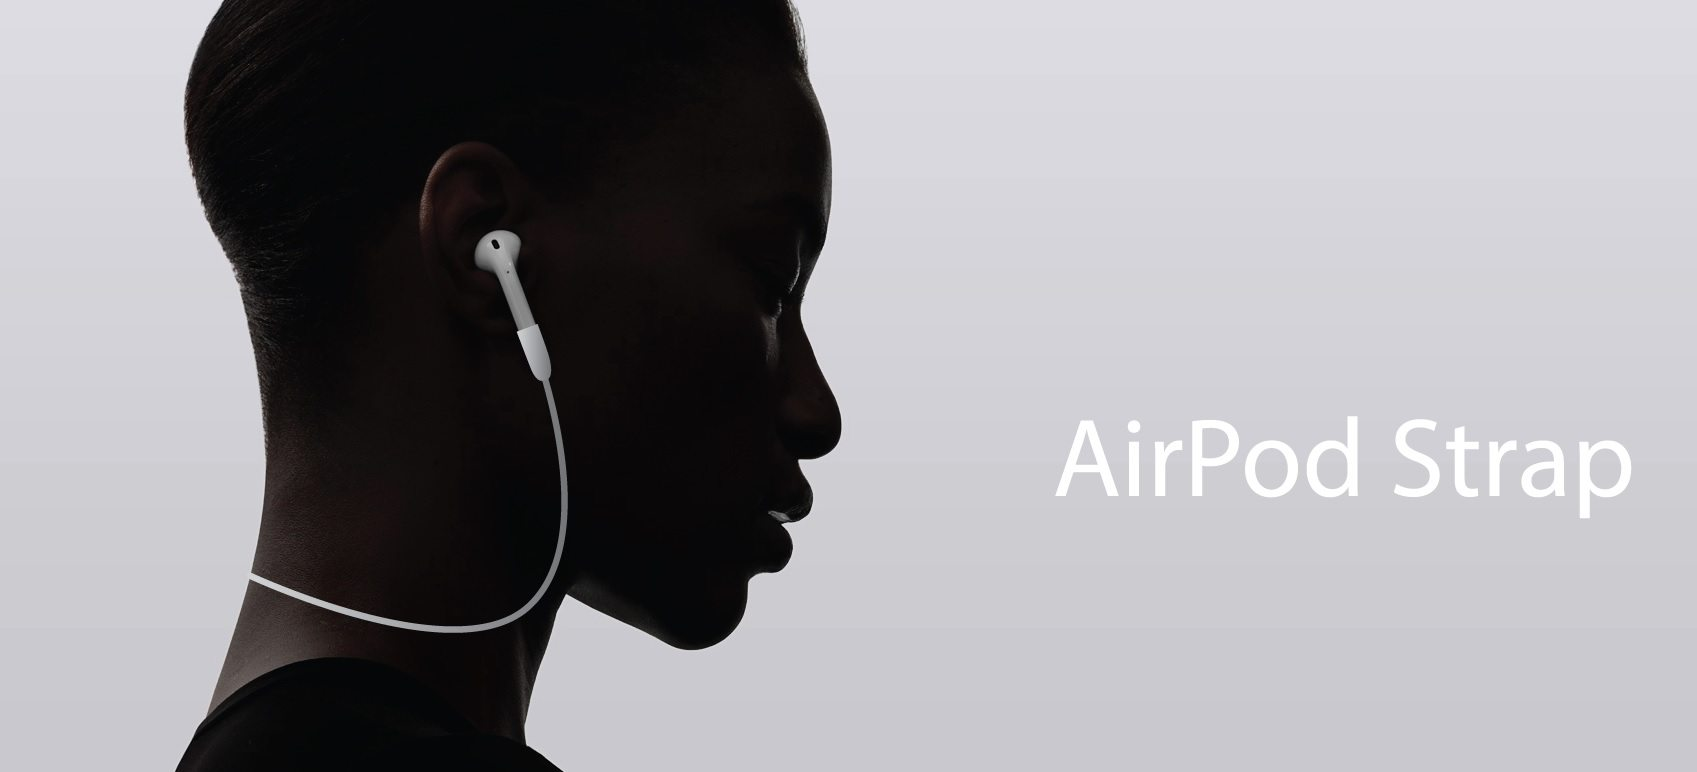 apple-airpods-airpod-strap